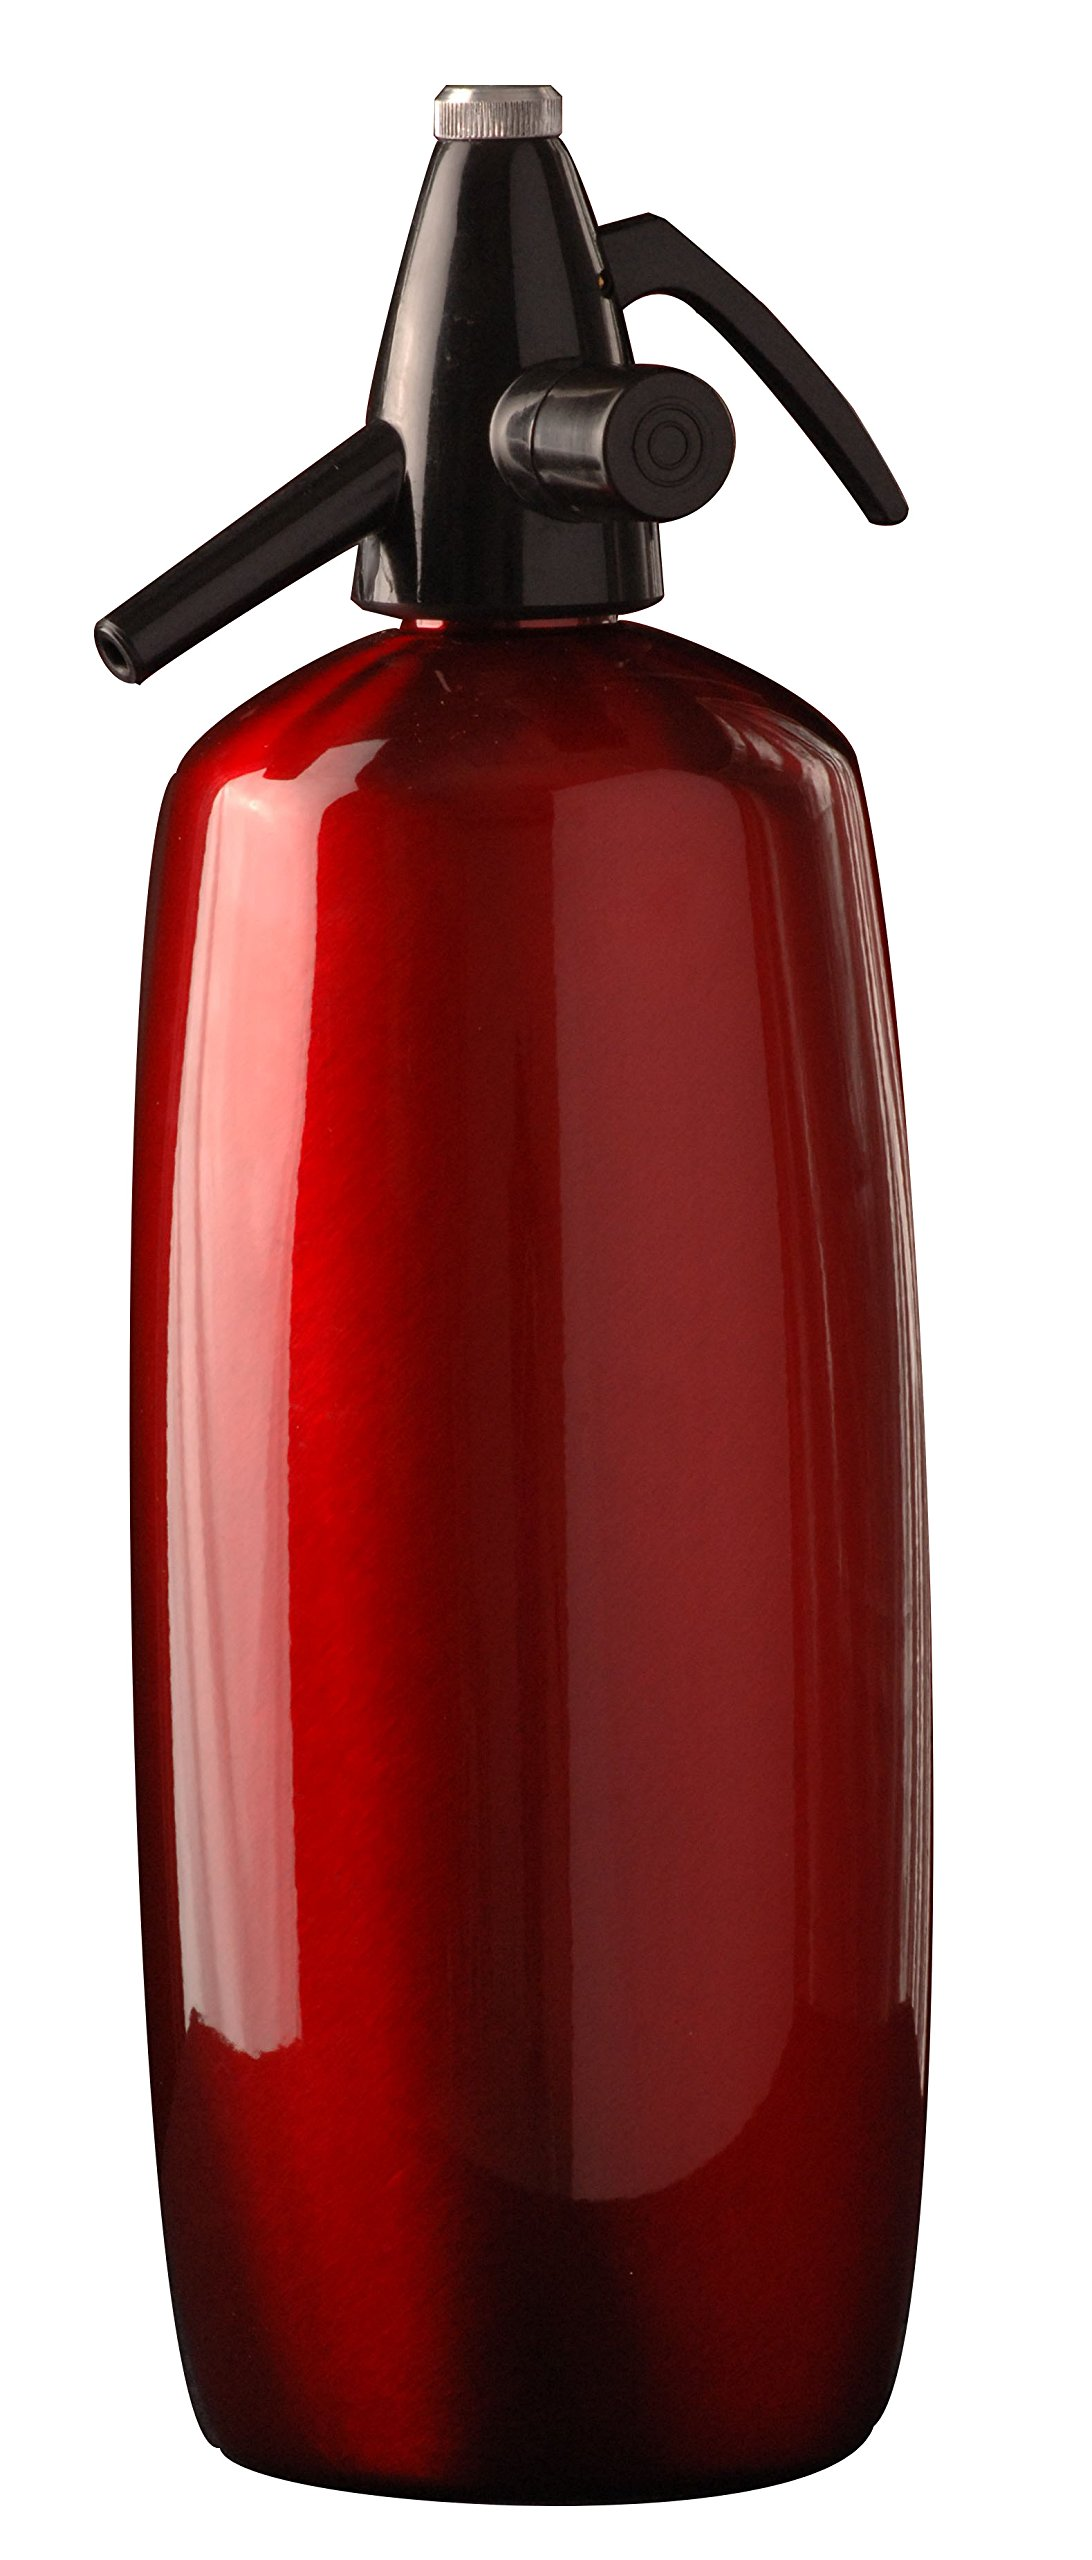 Liss 2-qt. Liss Professional Stainless Steel Soda Siphon, Red.